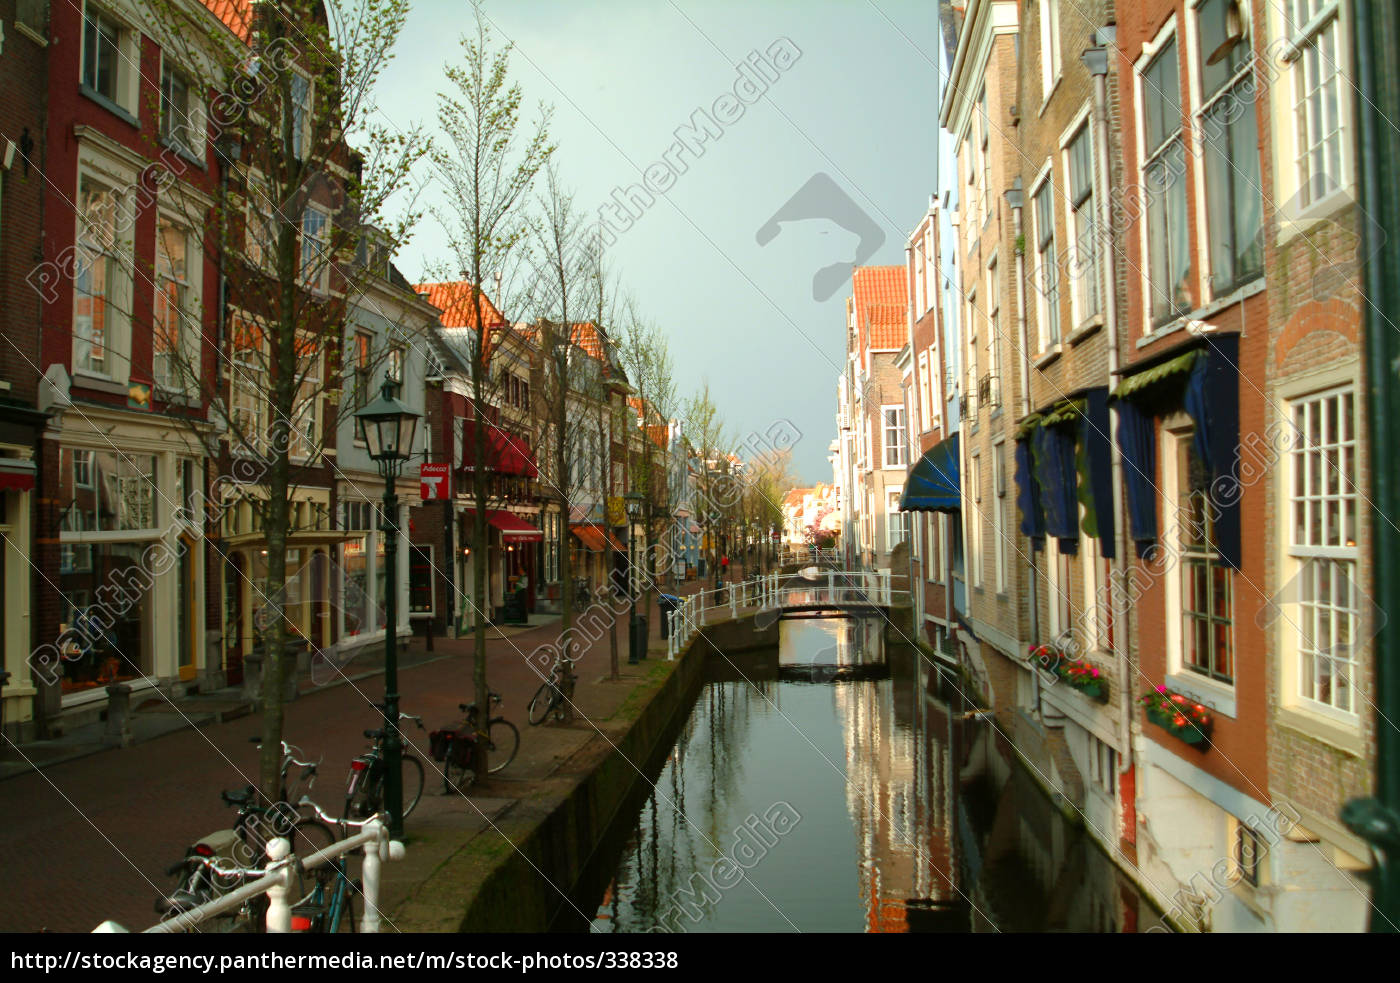 gracht, channel - 338338